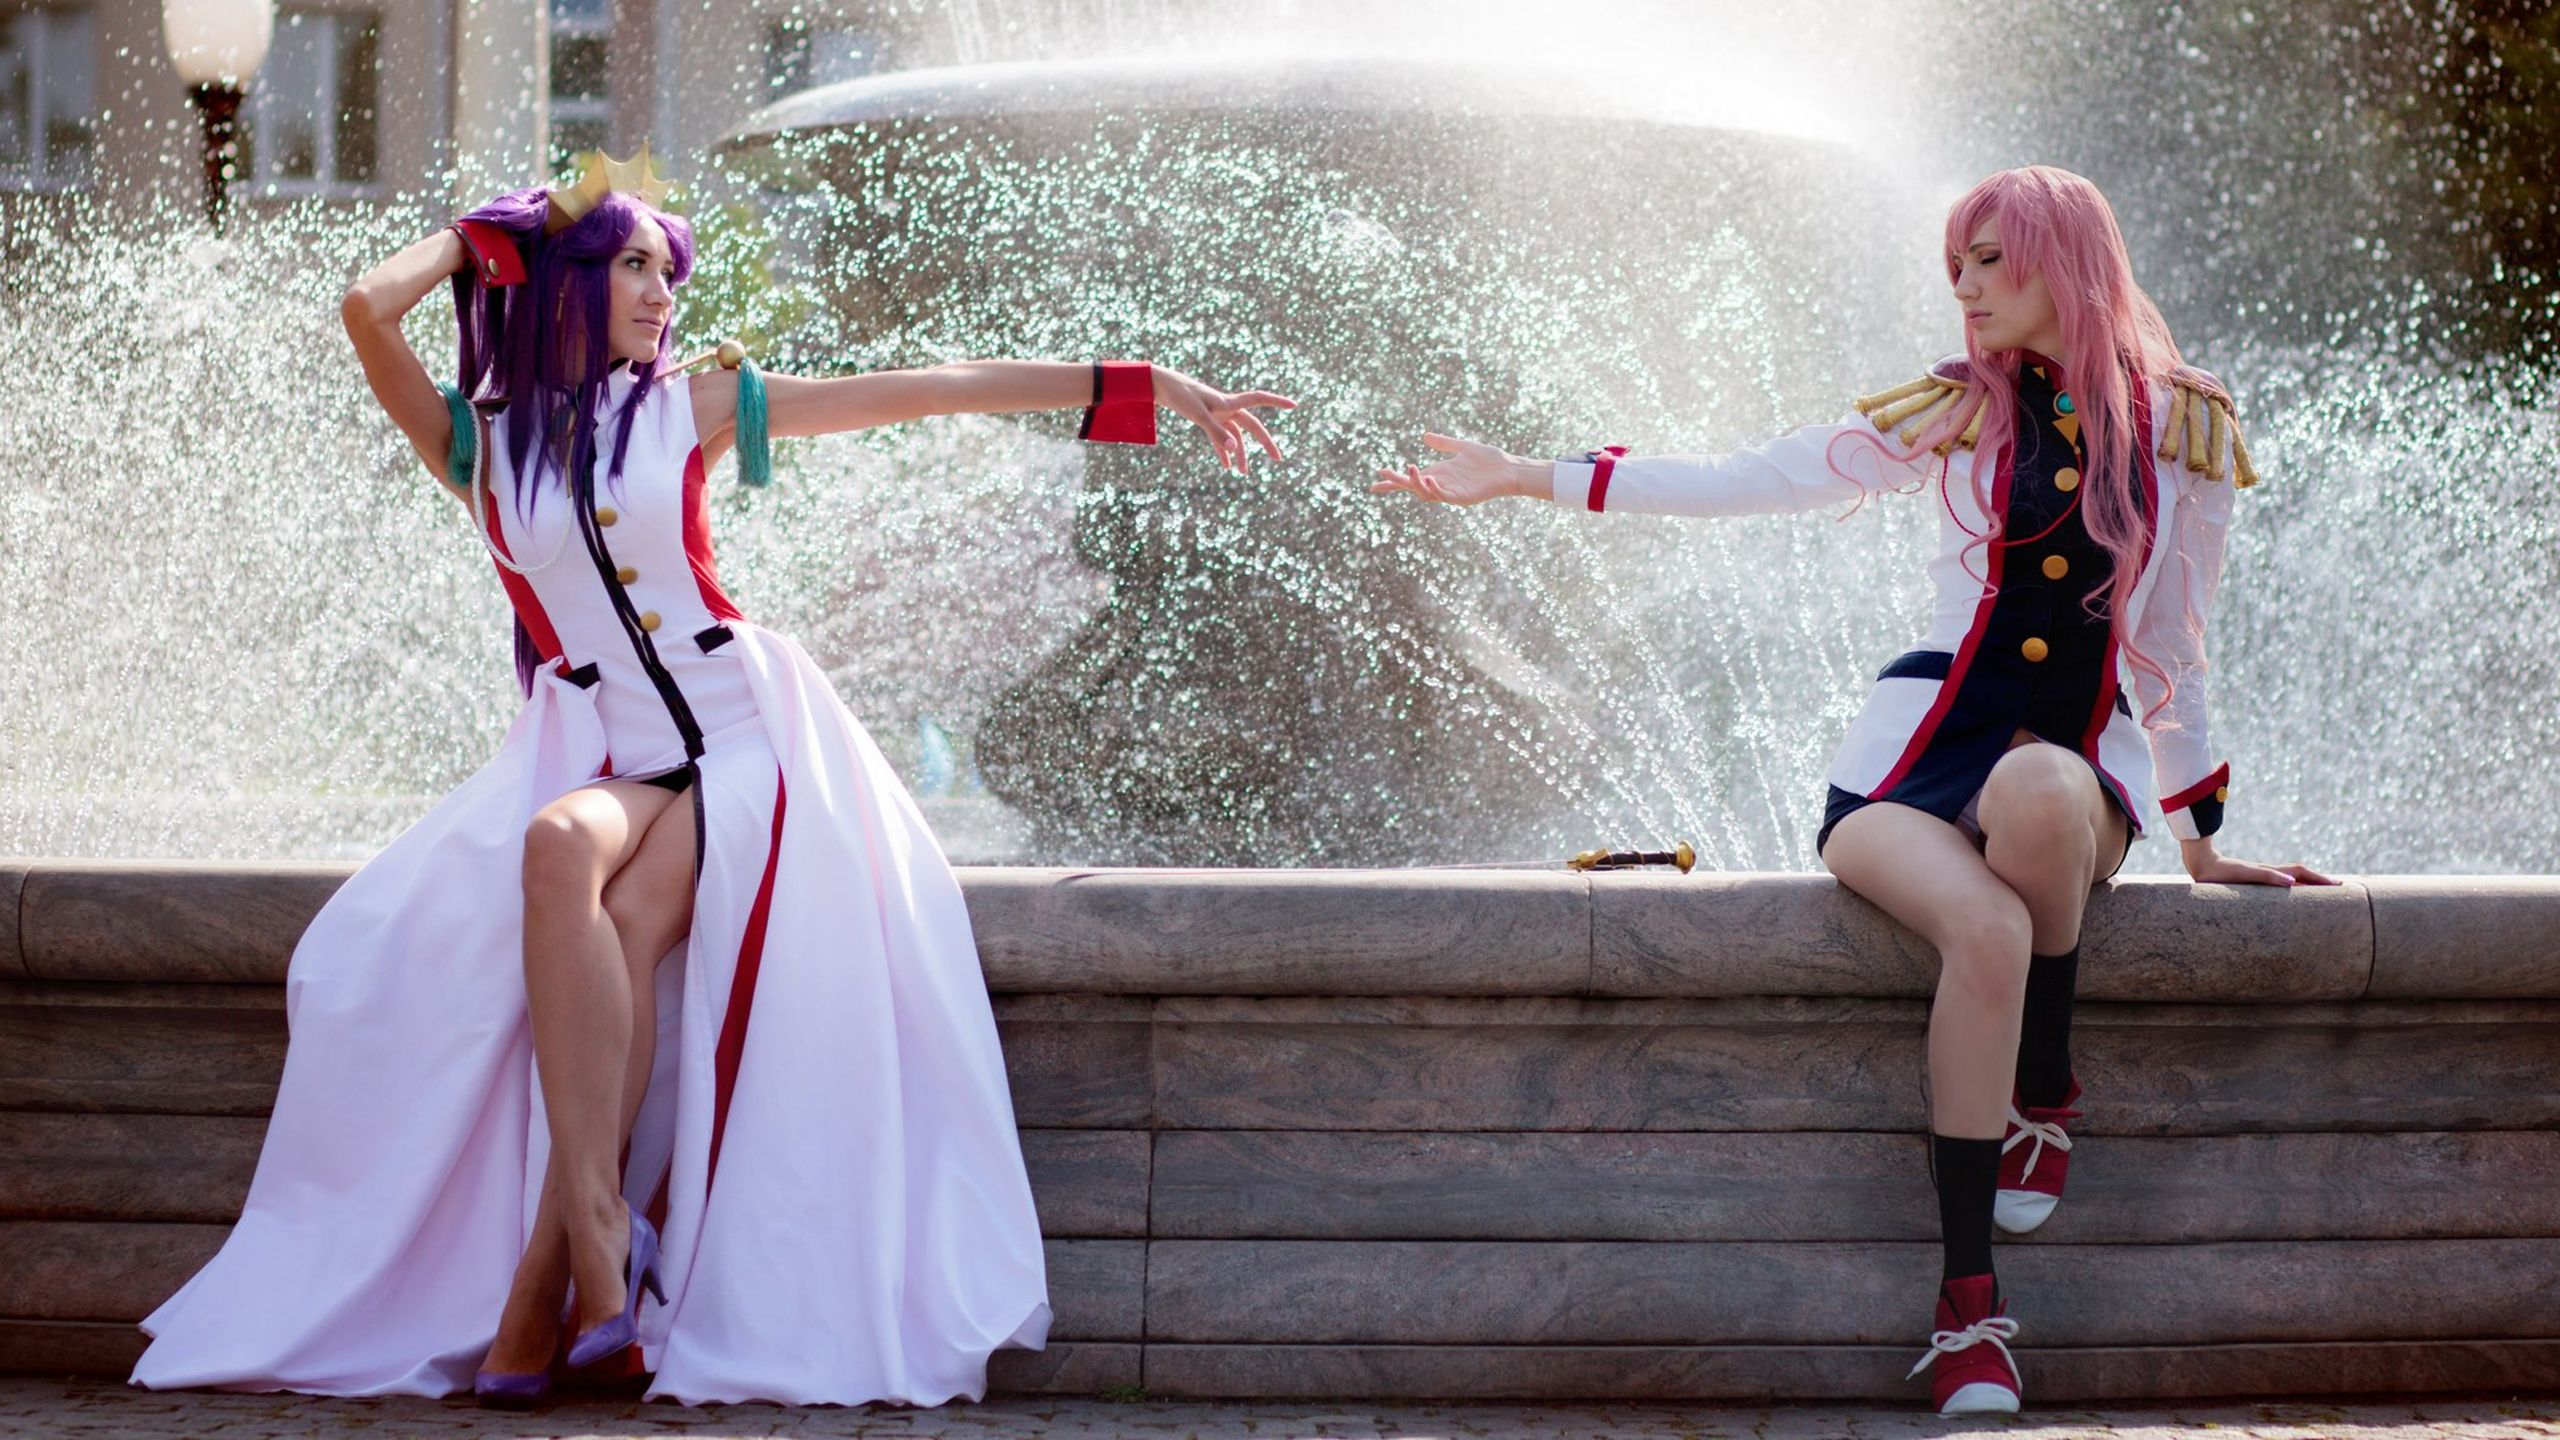 HD & Widescreen Wallpaper Of An Anthy And Utena Cosplay By